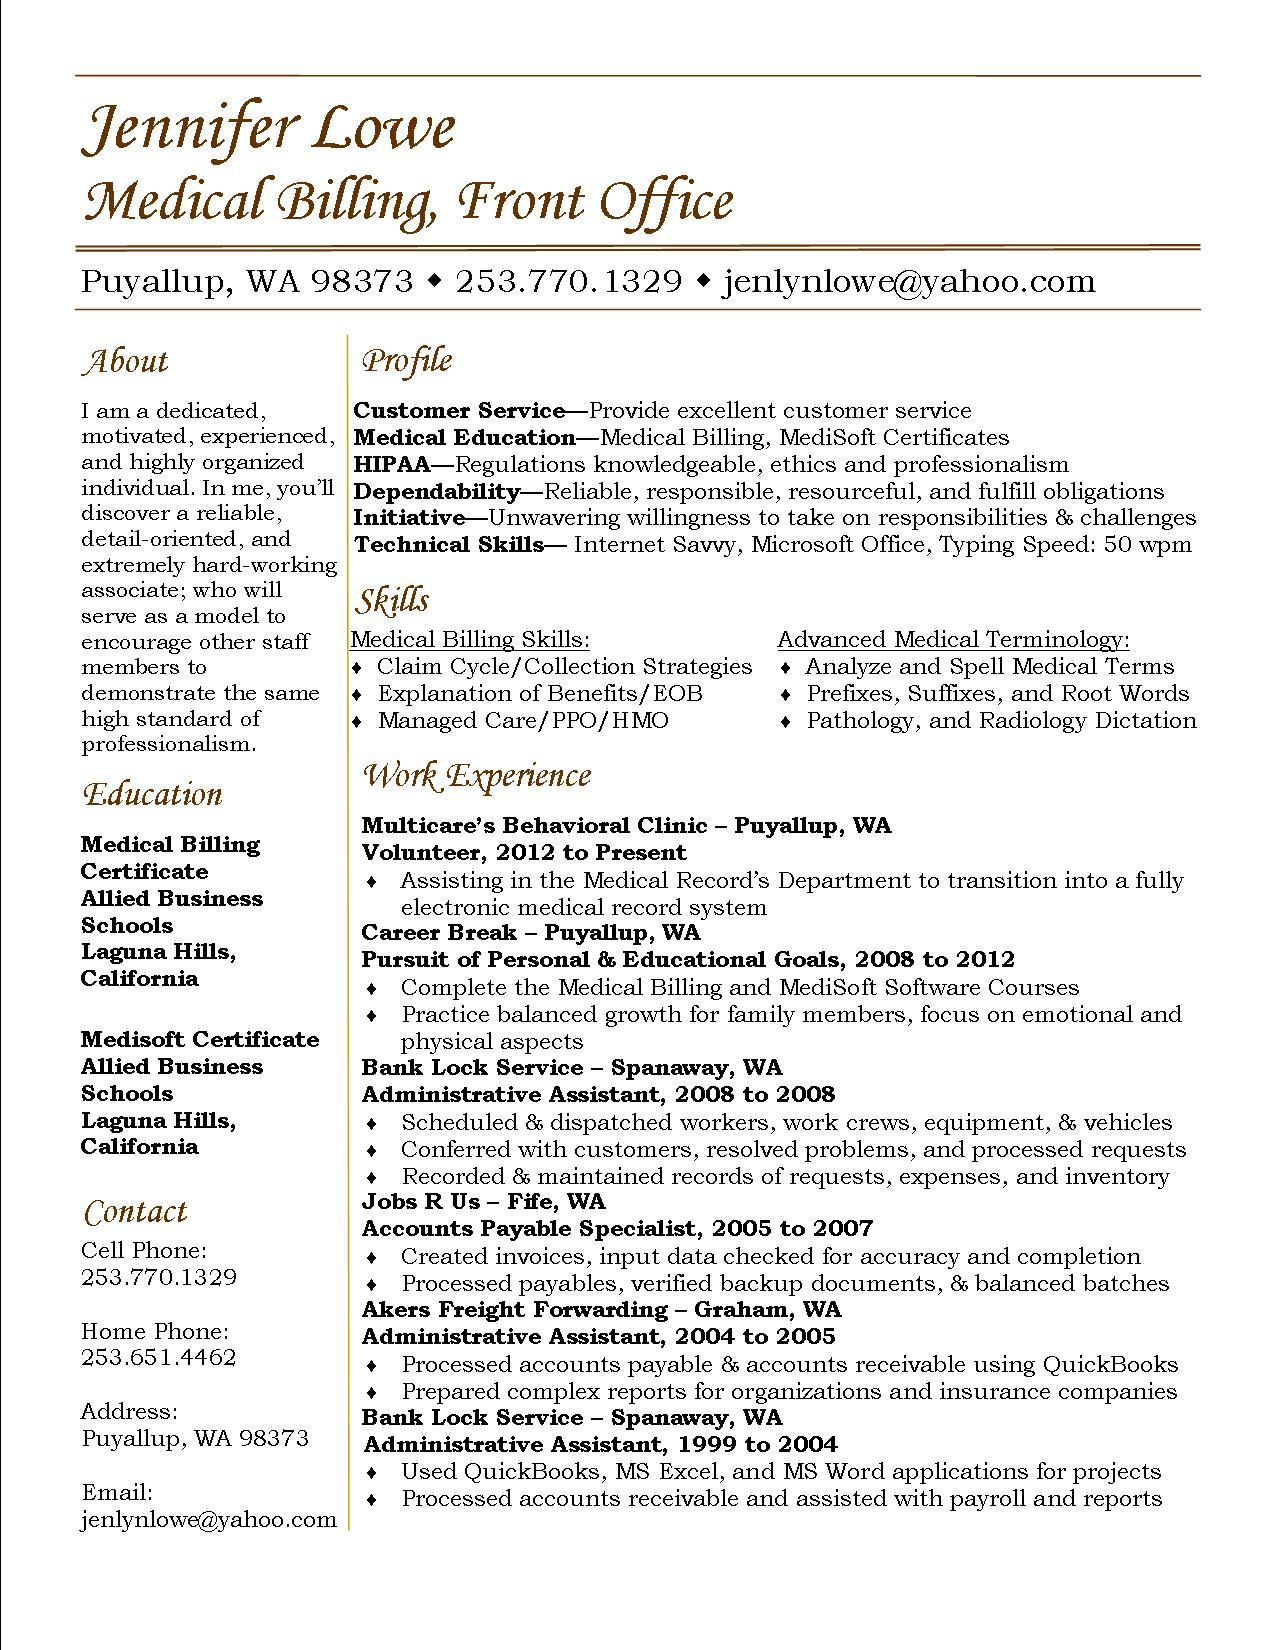 Jennifer Lowe Resume   Medical Billing #resume #career